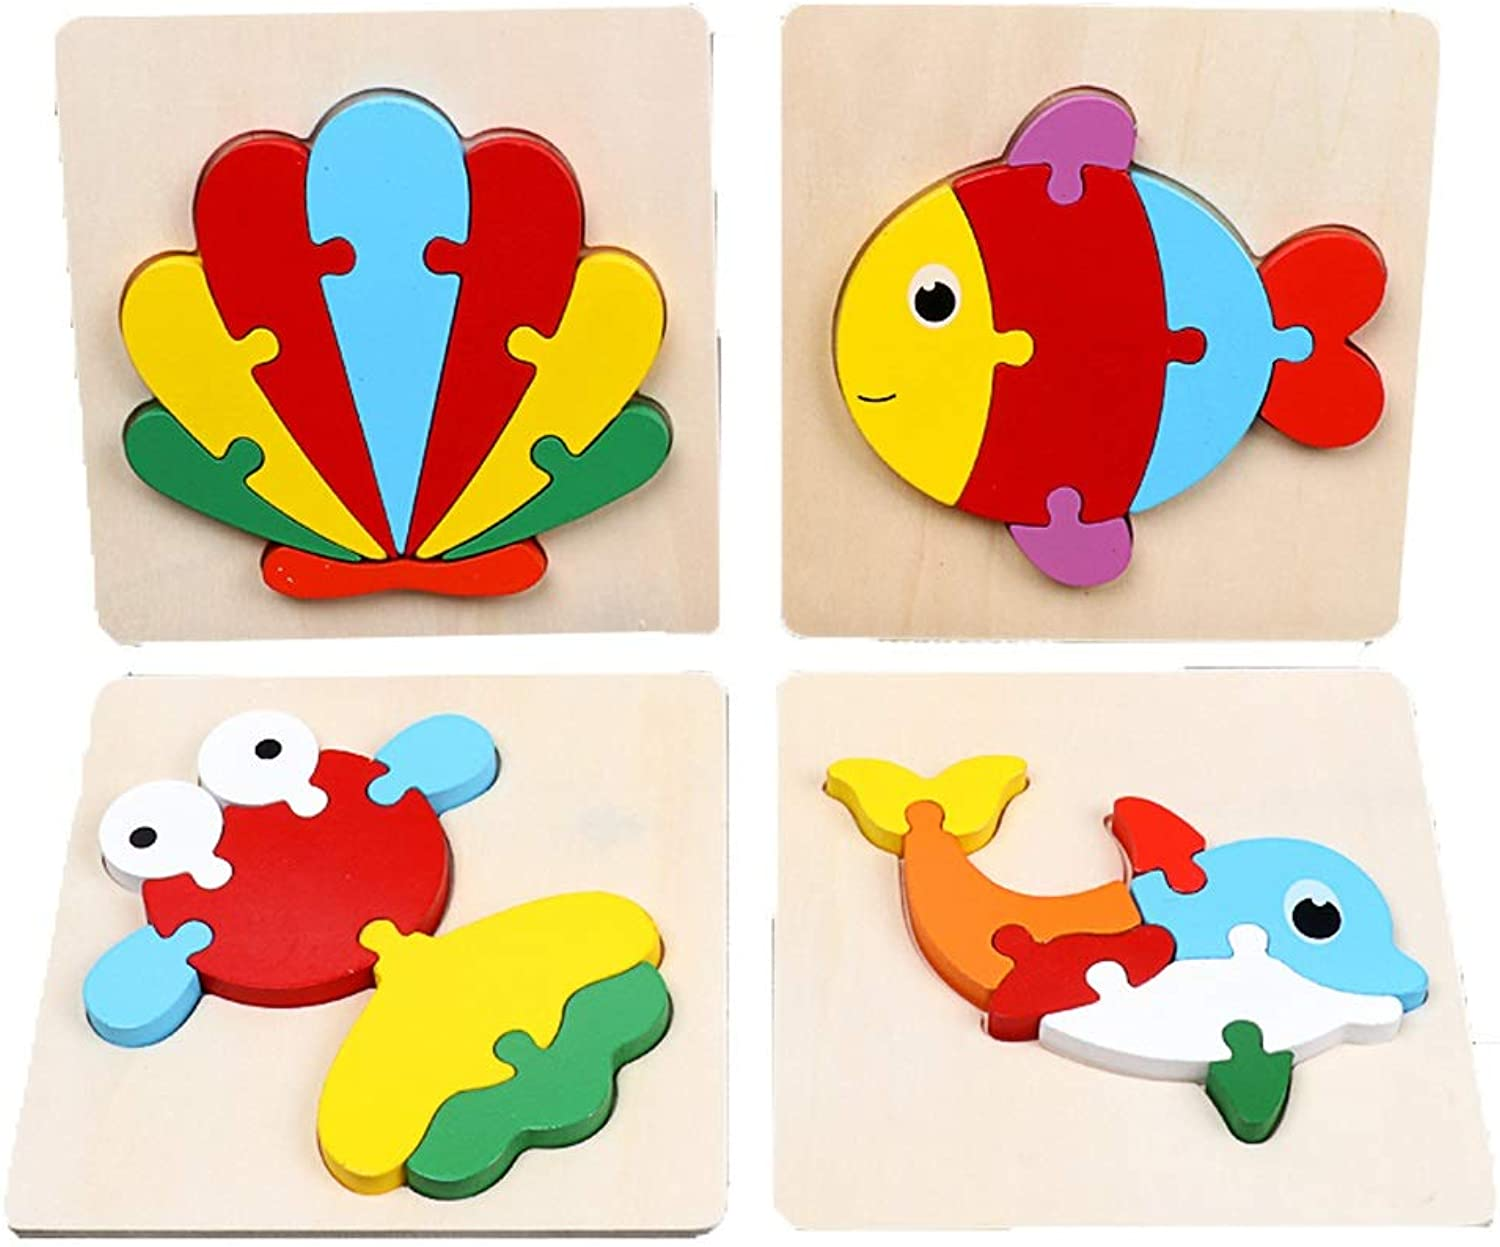 Hong Jie Yuan Toys  Early Learning Toys Wooden 3D Puzzle Toys Puzzle Development Puzzles Educational Toys  0123 Years Old Toys  Set Of 4  Hydrogen Ball Fish goldfish Dolphin